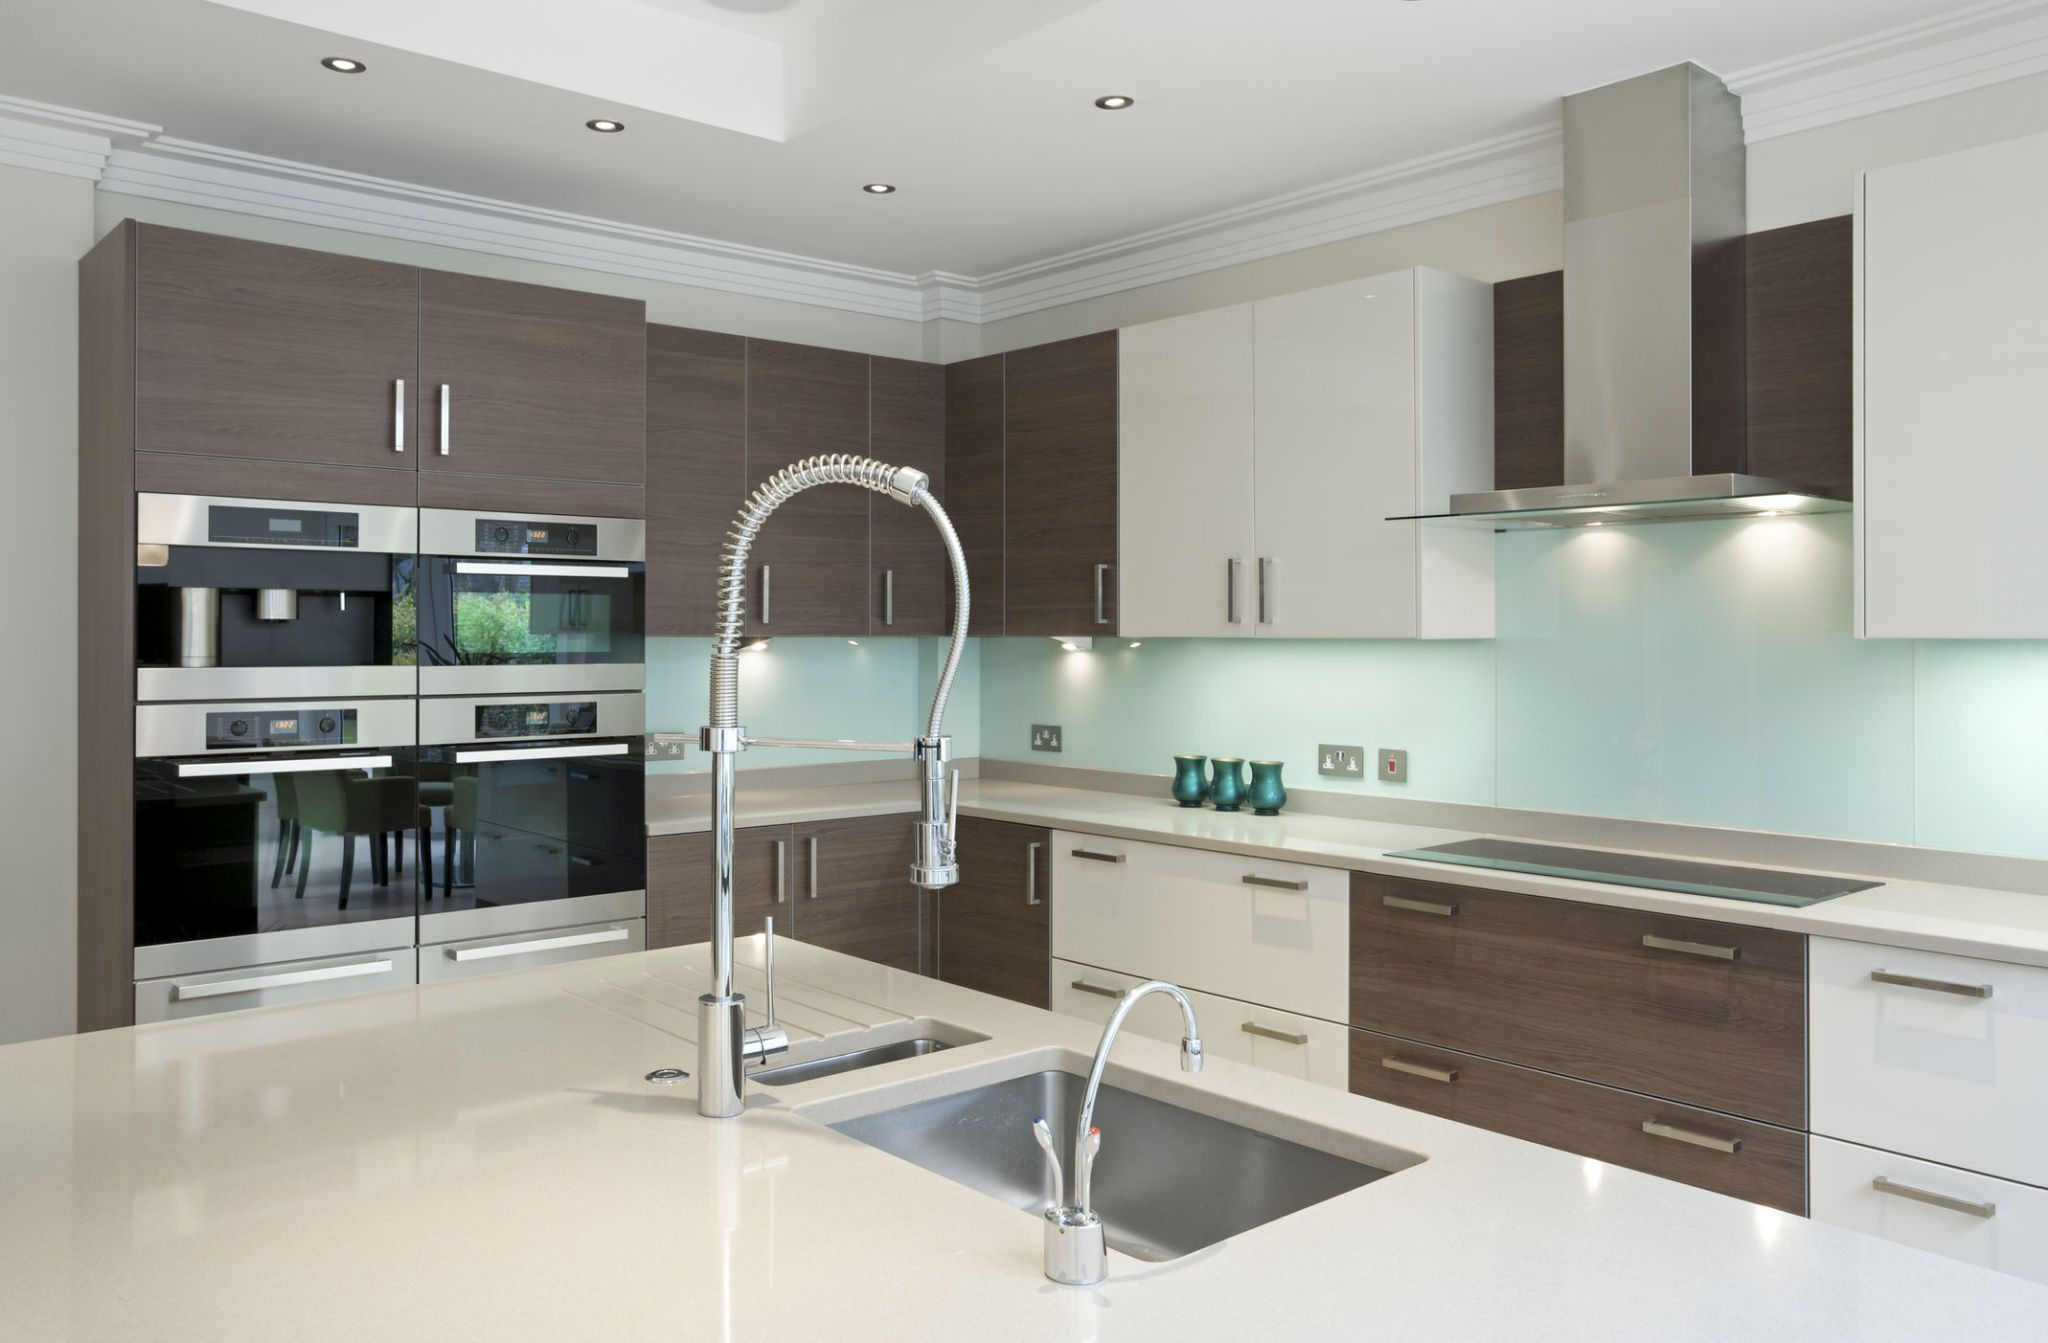 Modern Kitchen Interior With Two Tone Design